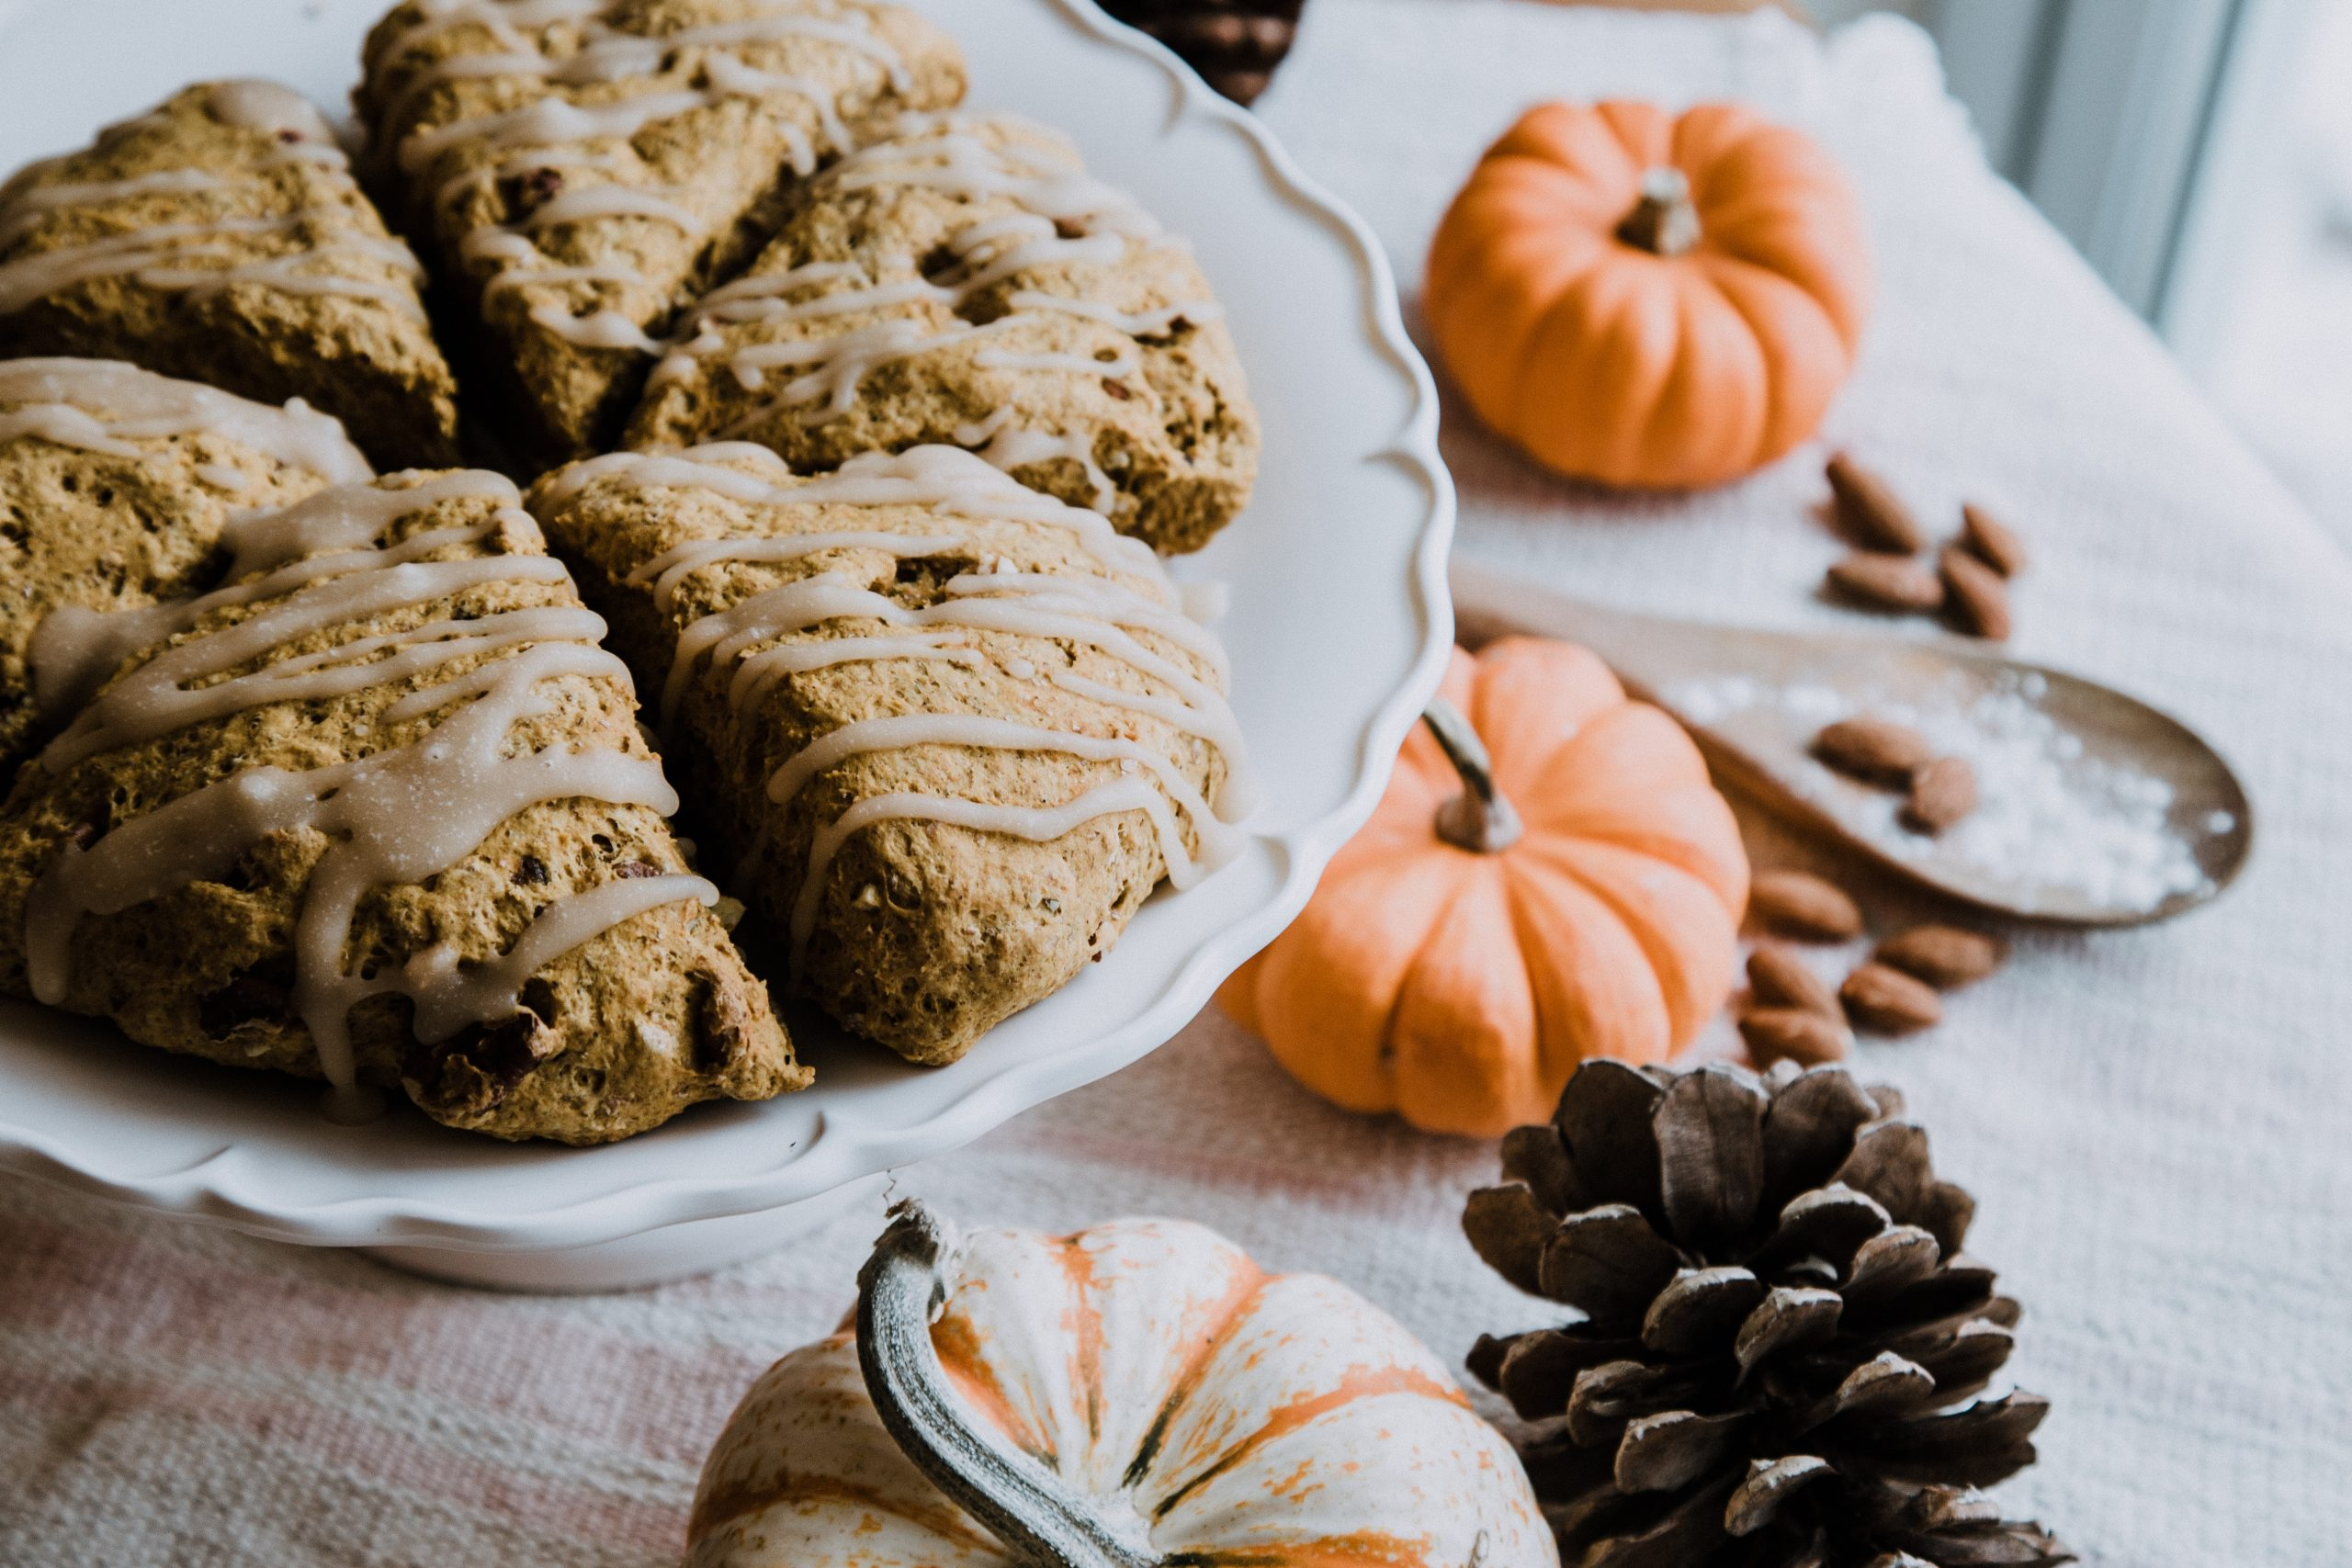 Pumpkin and cakes